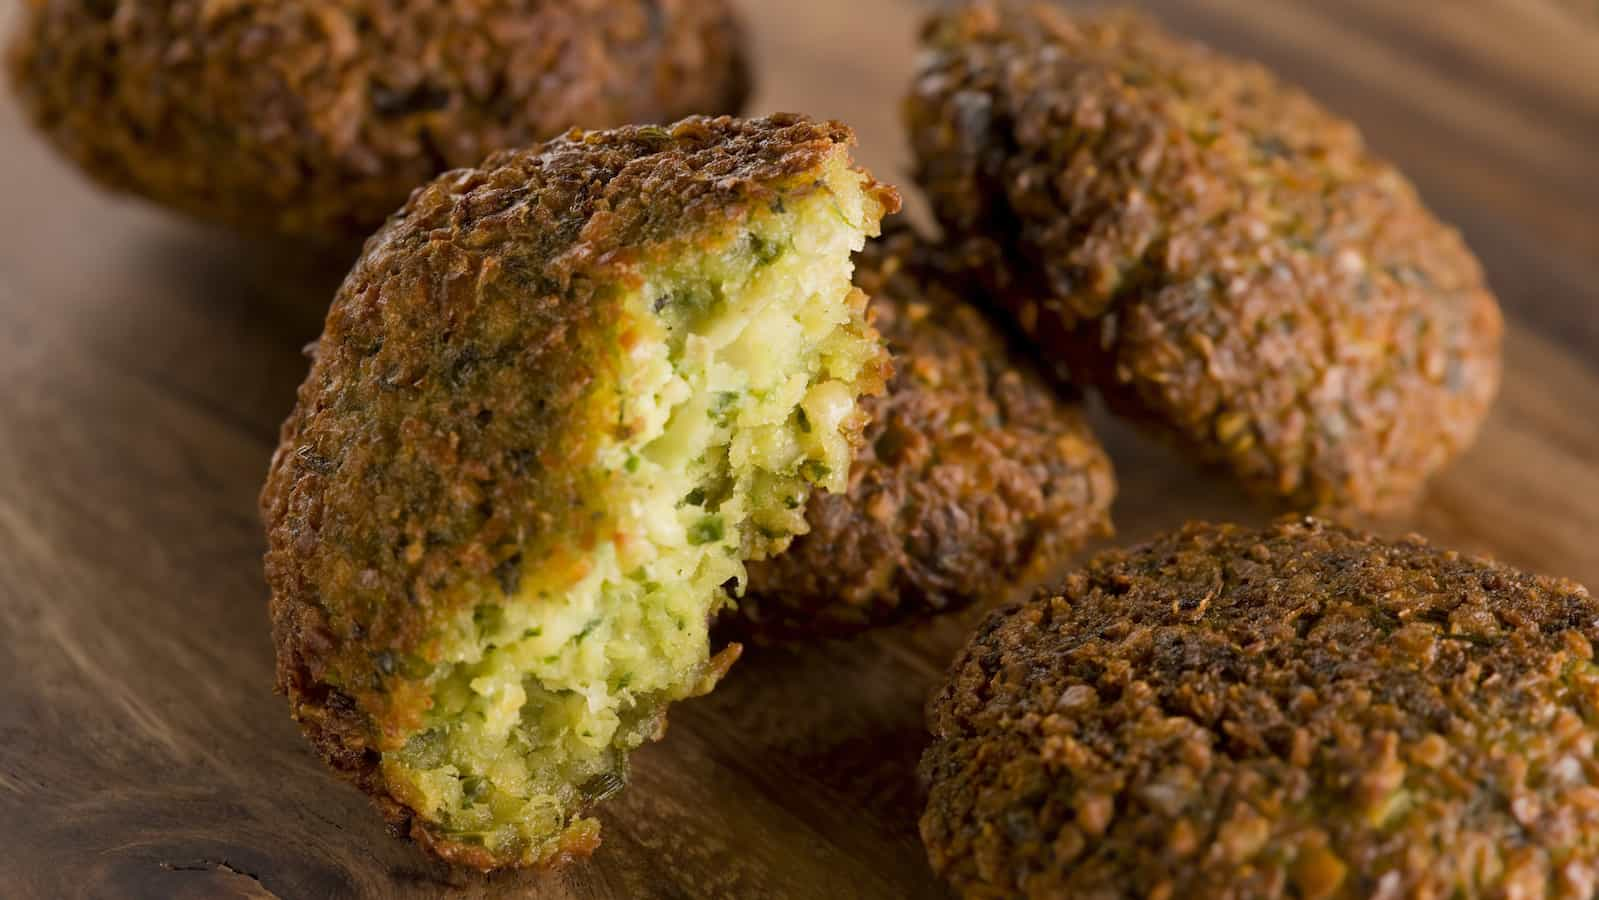 guided tours in israel-falafel in israel